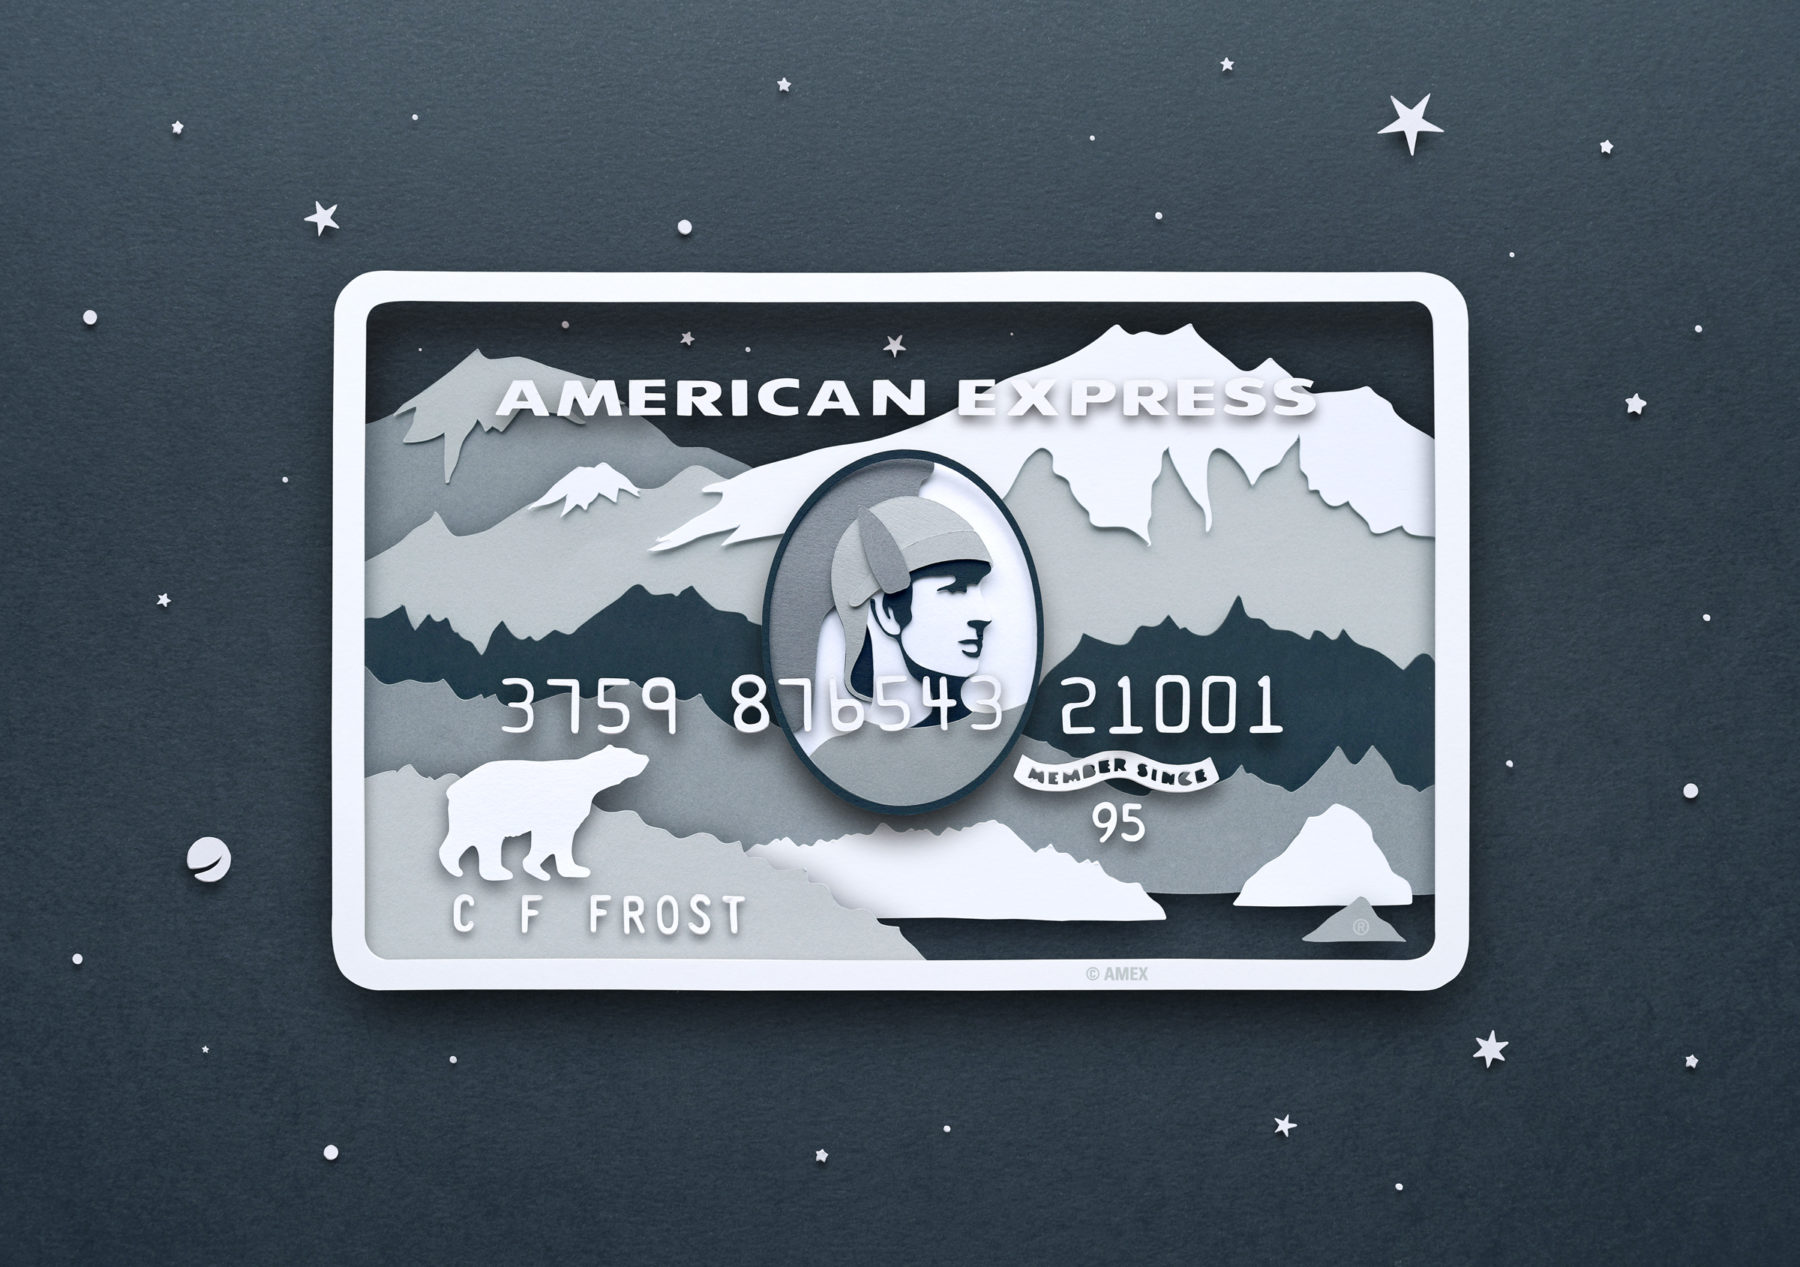 Paper Illustrations for American Express Card Series by Owen Gildersleeve - Platinum